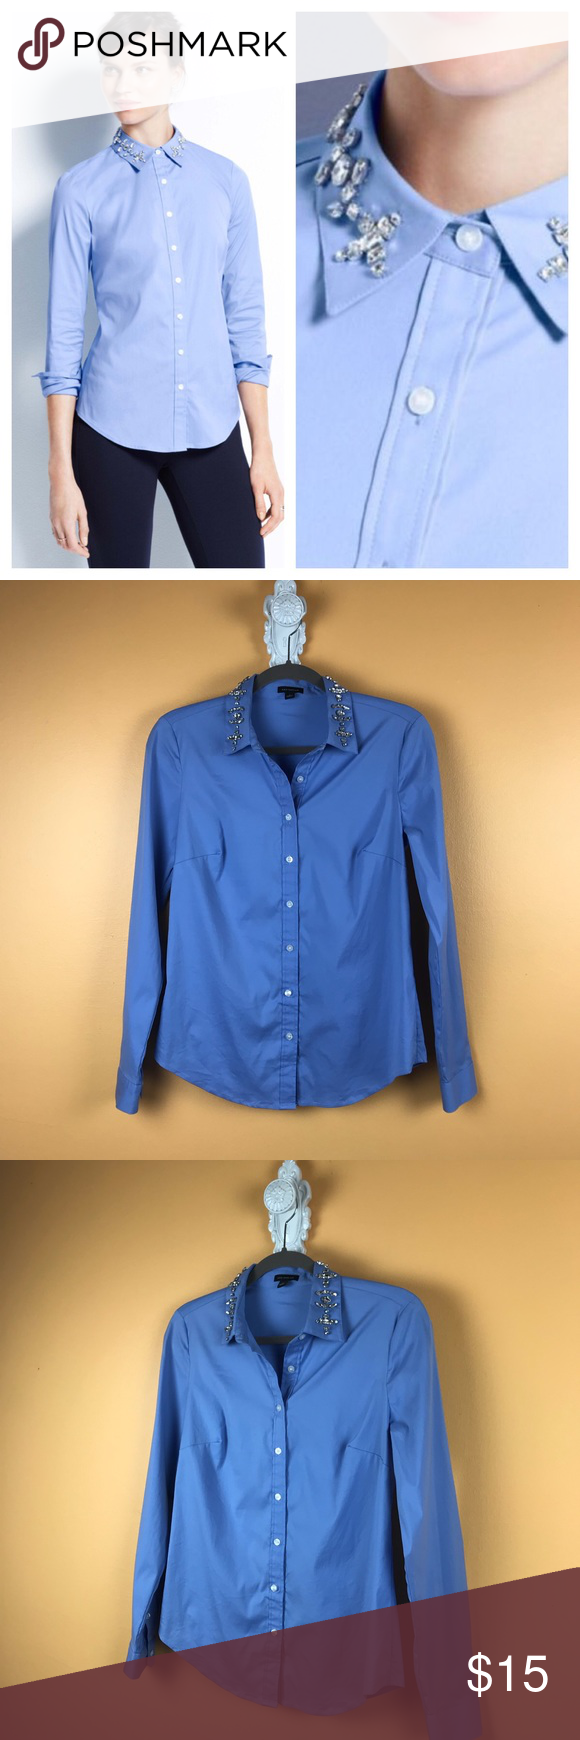 3eec1038 Ann Taylor Jeweled Collar Shirt Blue Periwinkle colored long sleeve button  down shirt with jewel embellished